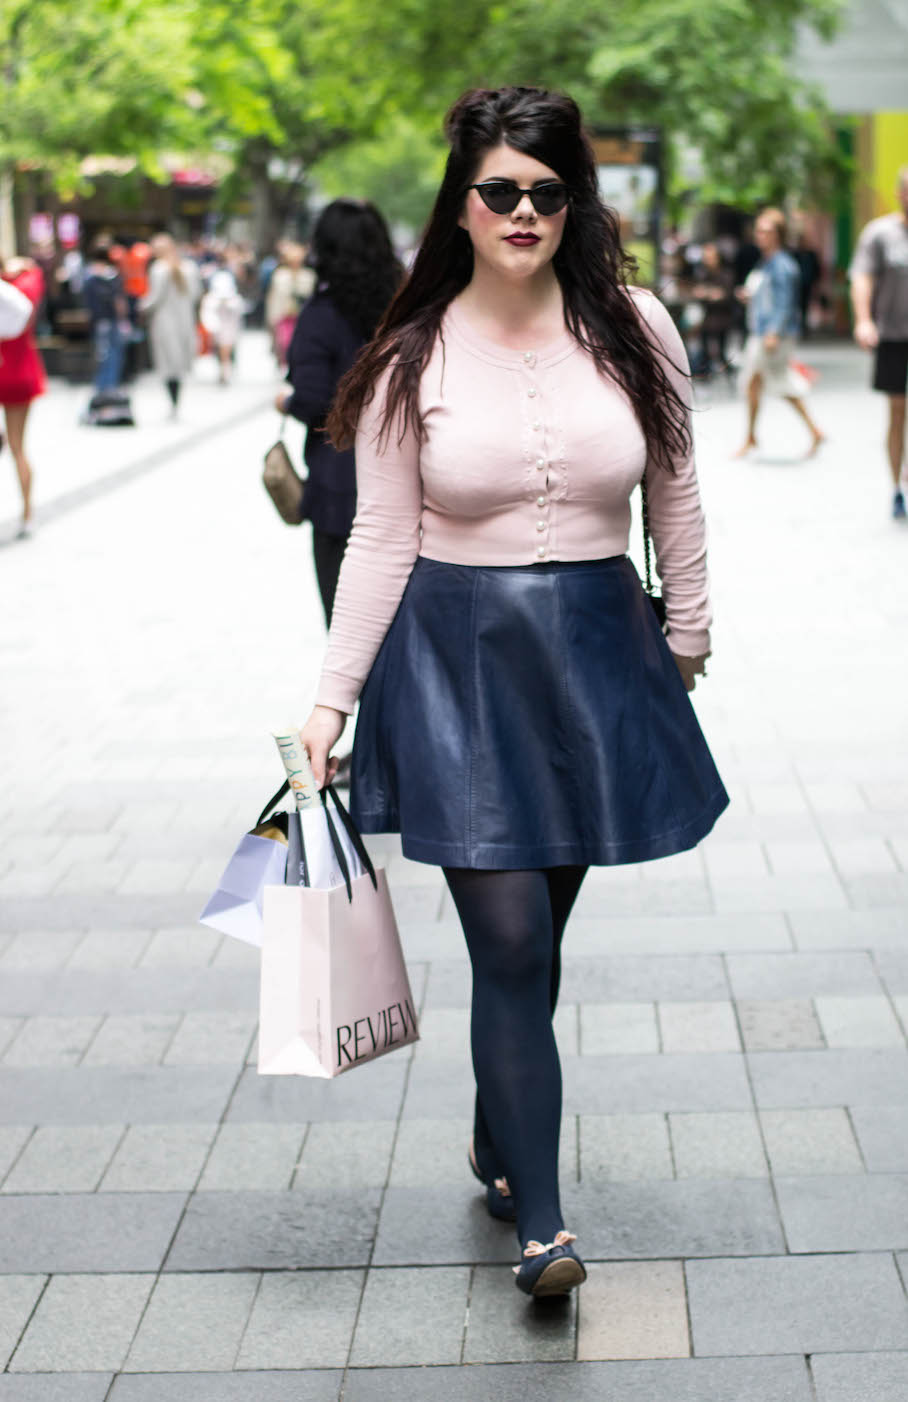 """NSW: Alexandra Dockrill, teacher, Pitt St. """"My style is girly with a touch of vintage or edge."""" Photo: Alice Scriberras"""